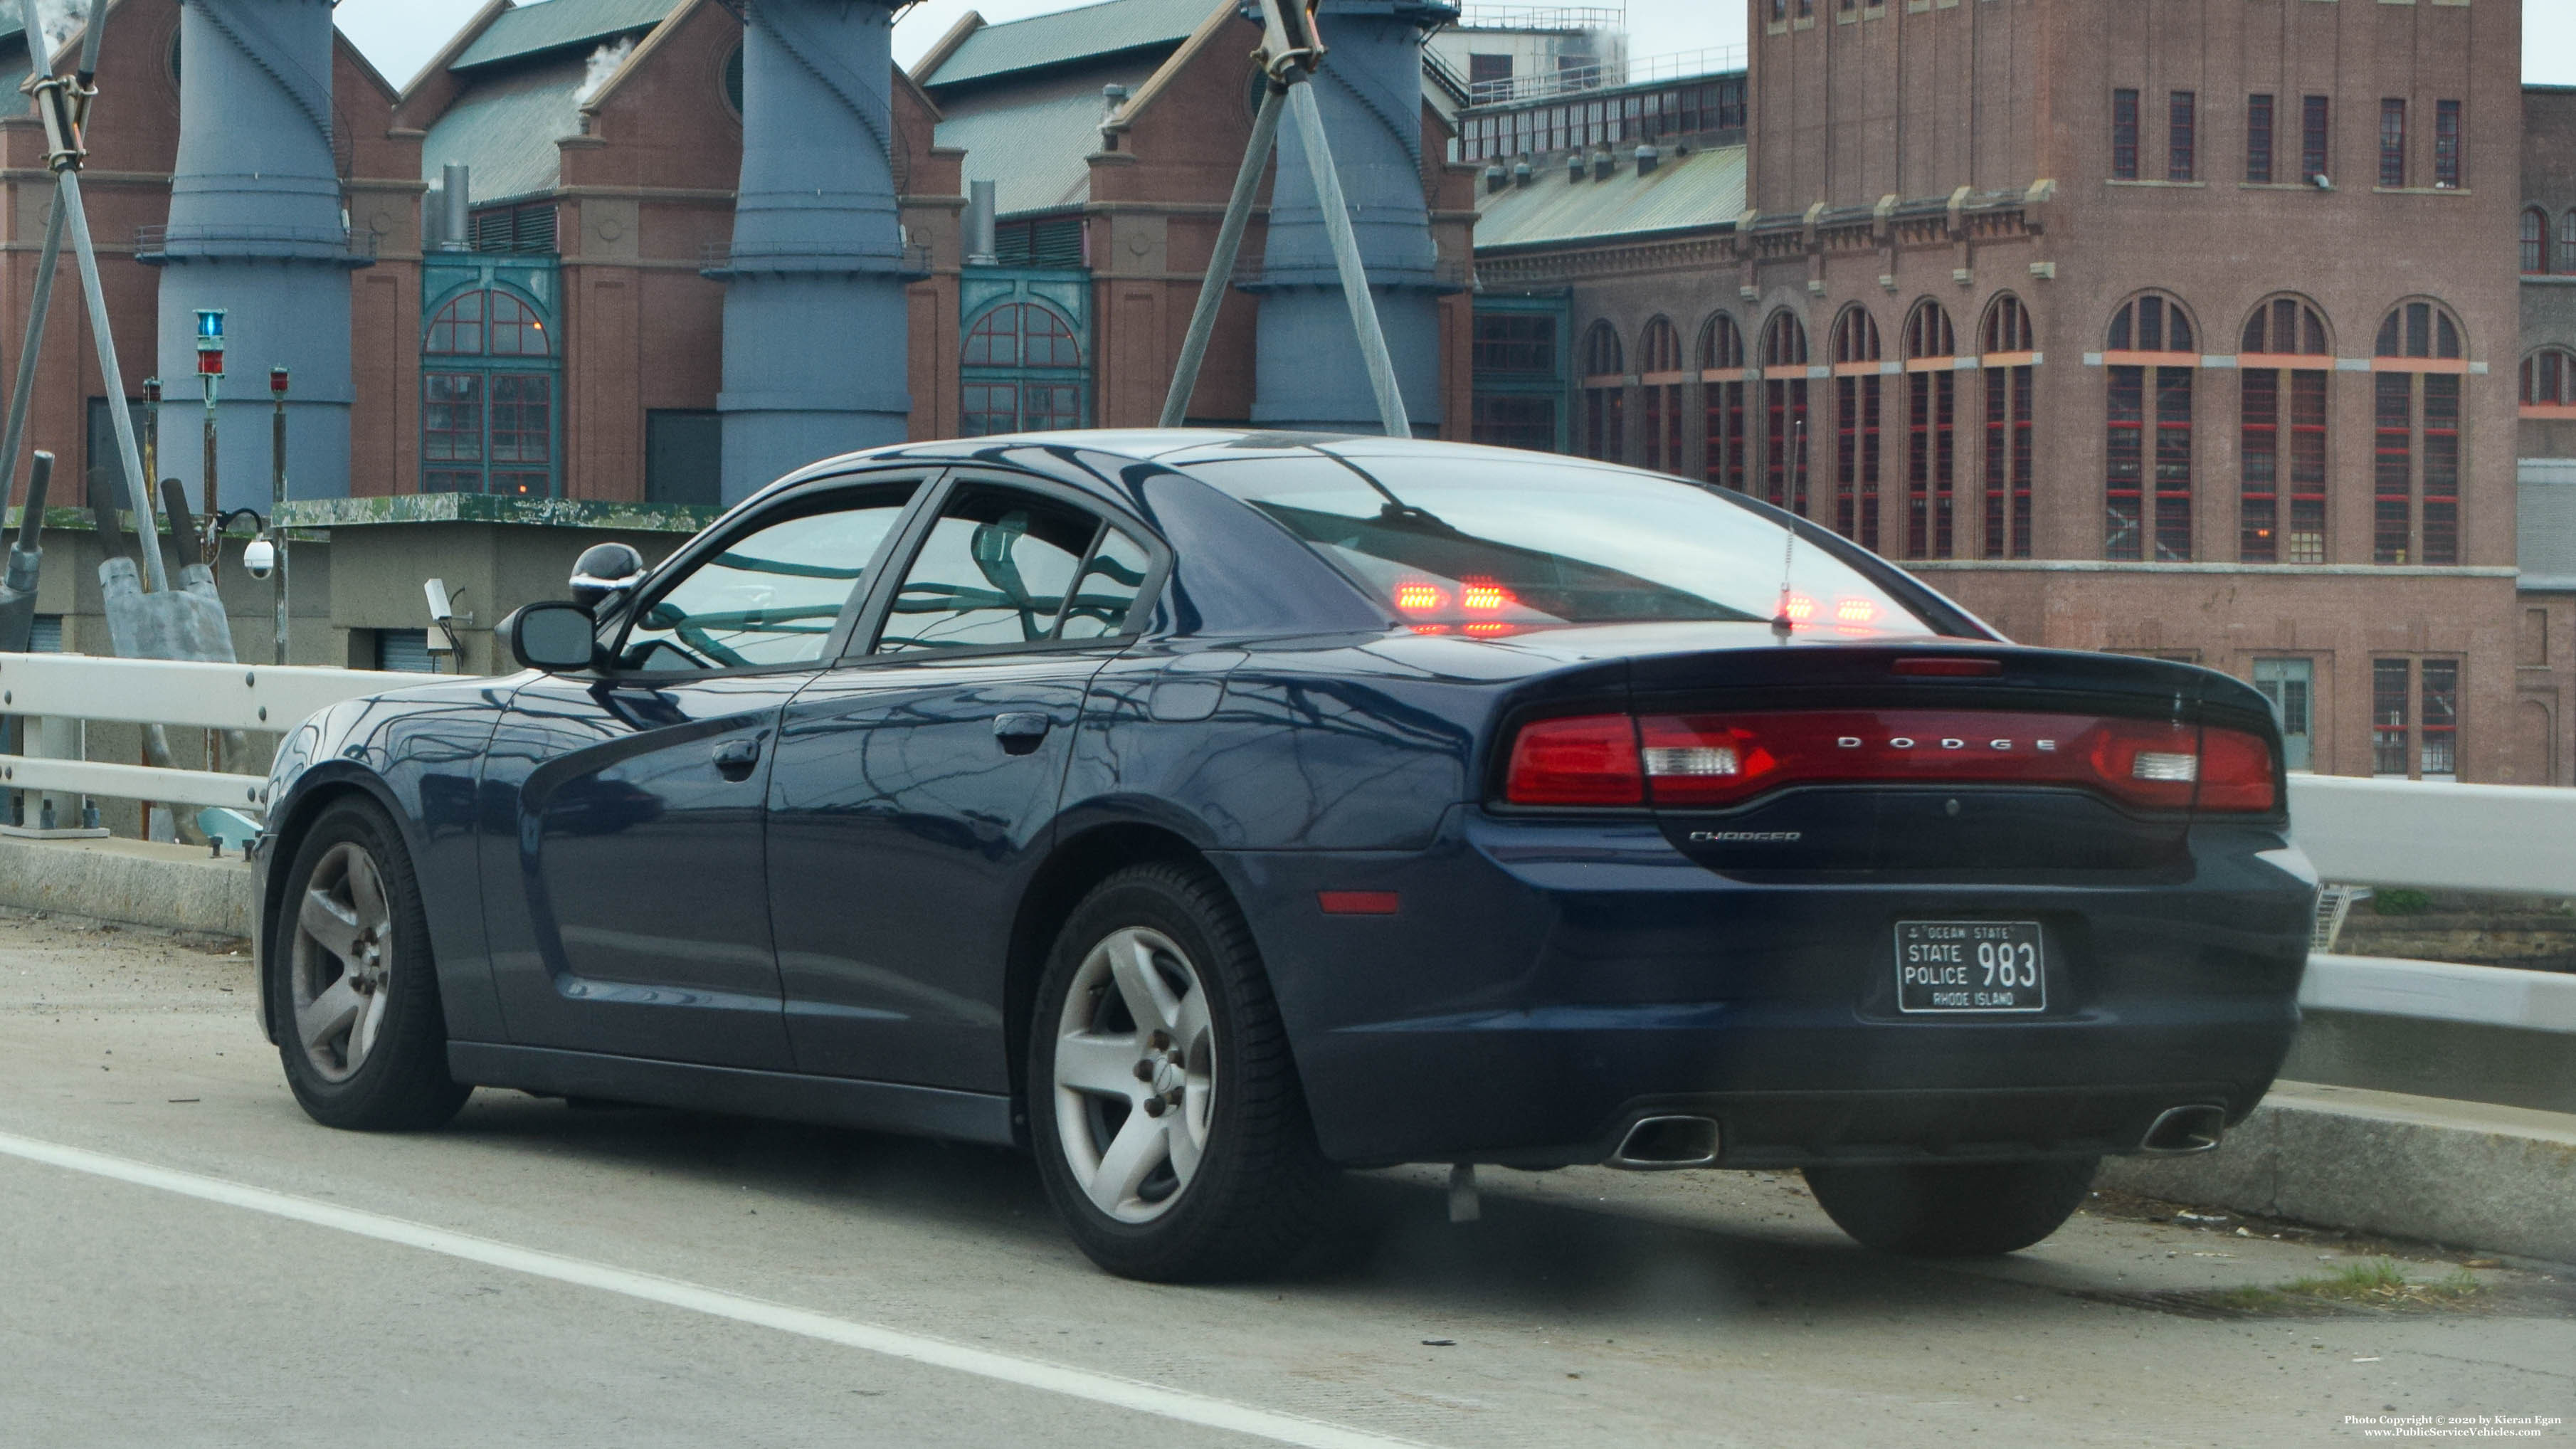 A photo  of Rhode Island State Police             Cruiser 983, a 2013 Dodge Charger             taken by Kieran Egan